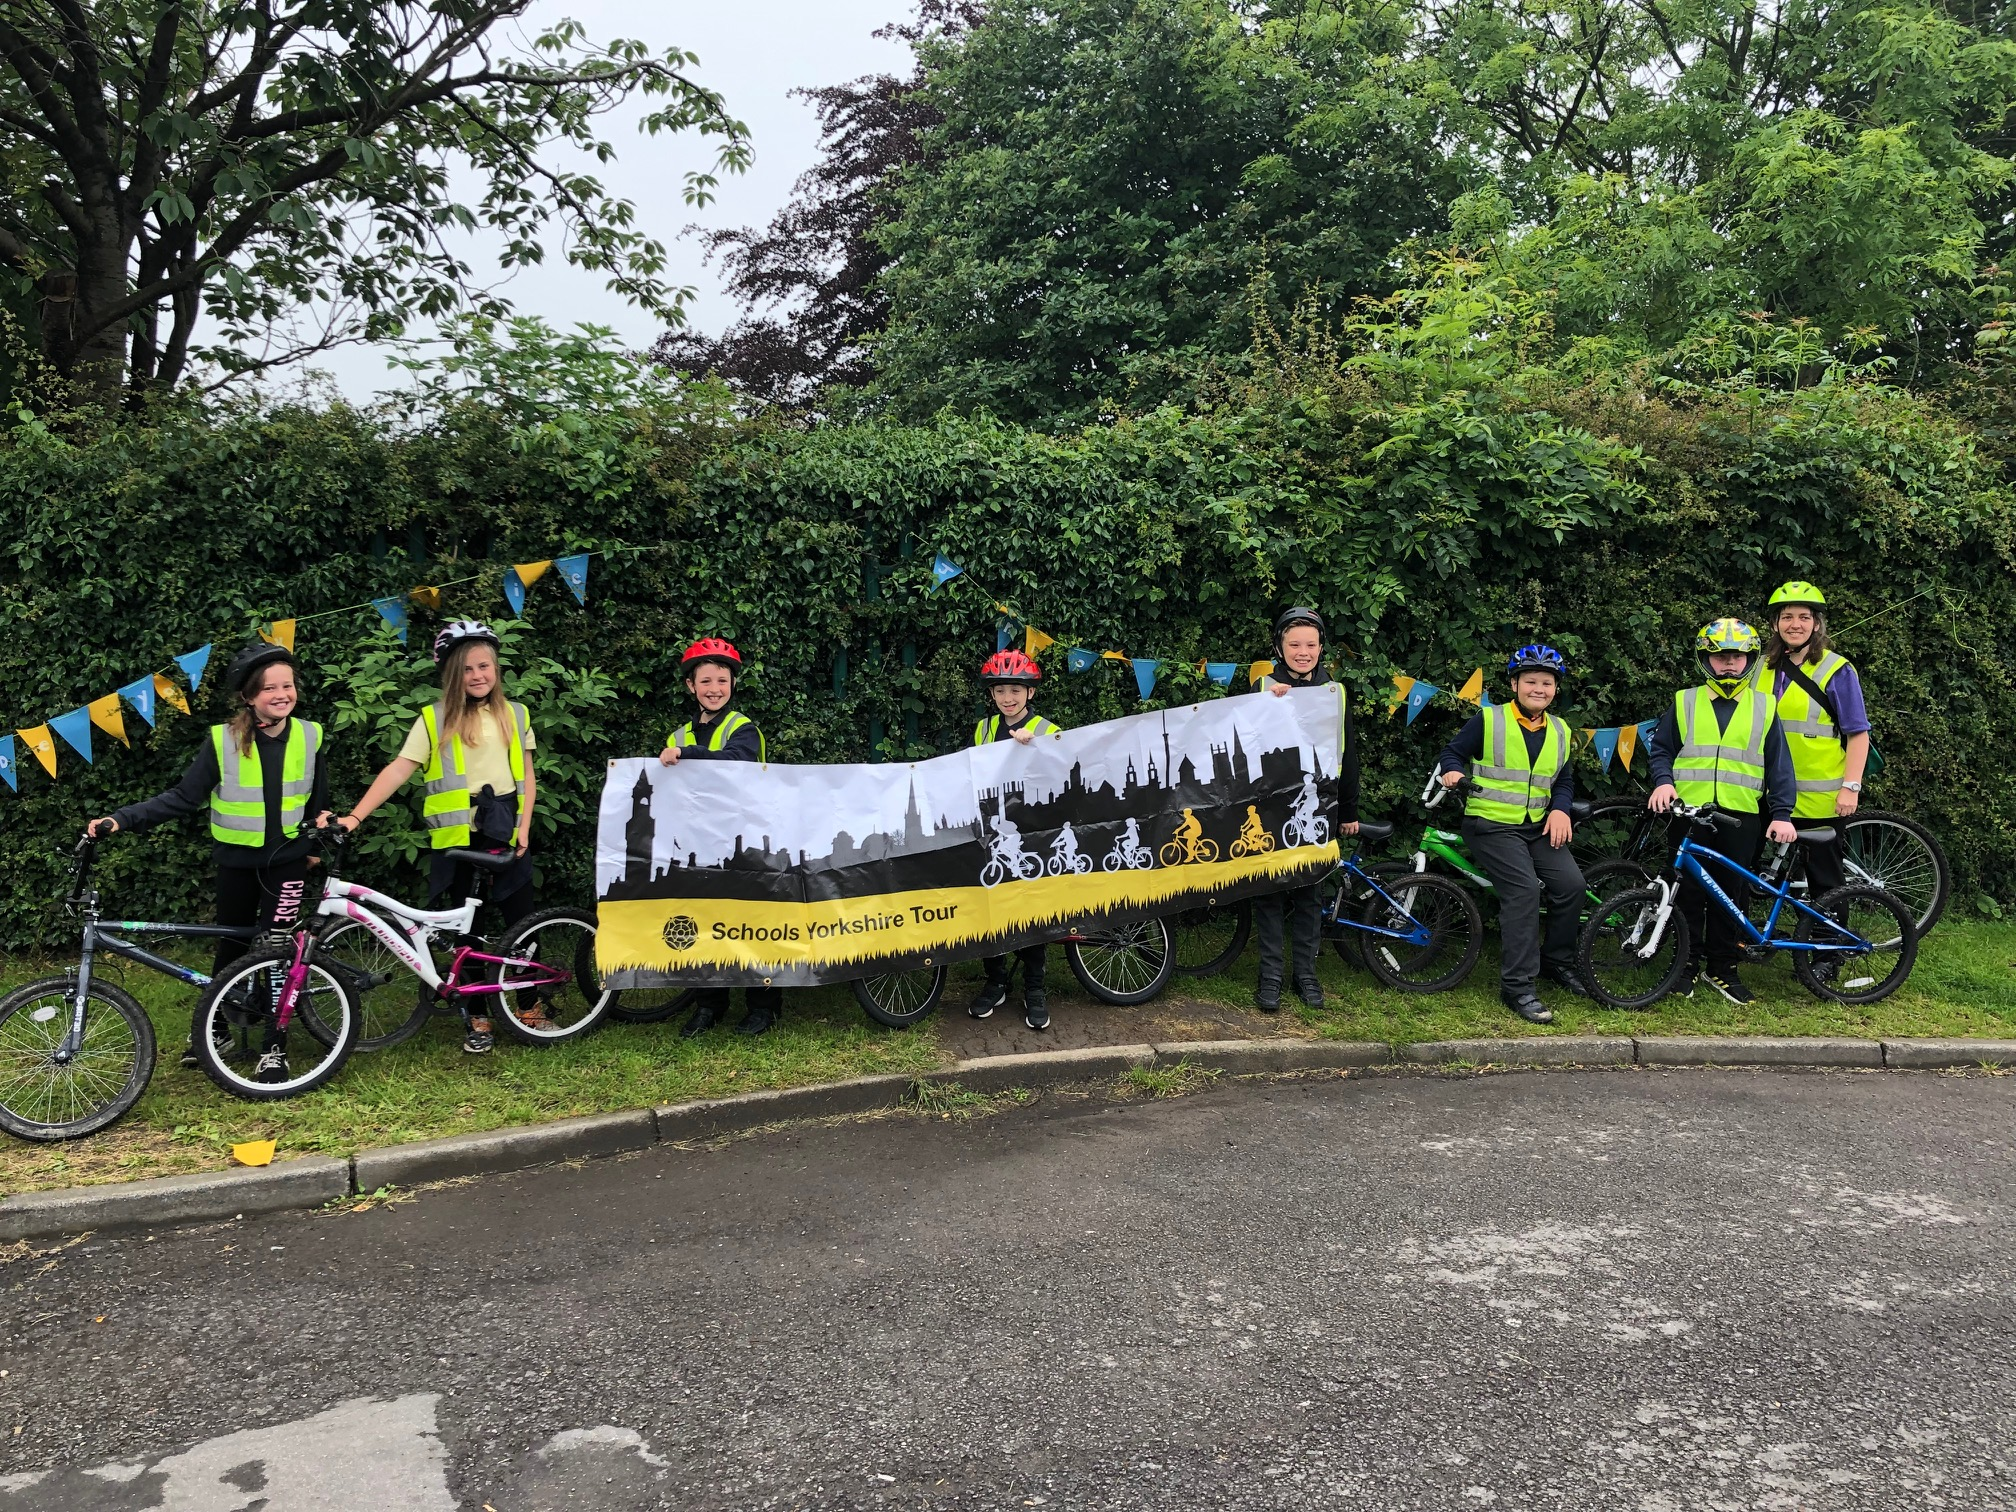 Schools Yorkshire tour - bikers holding sign